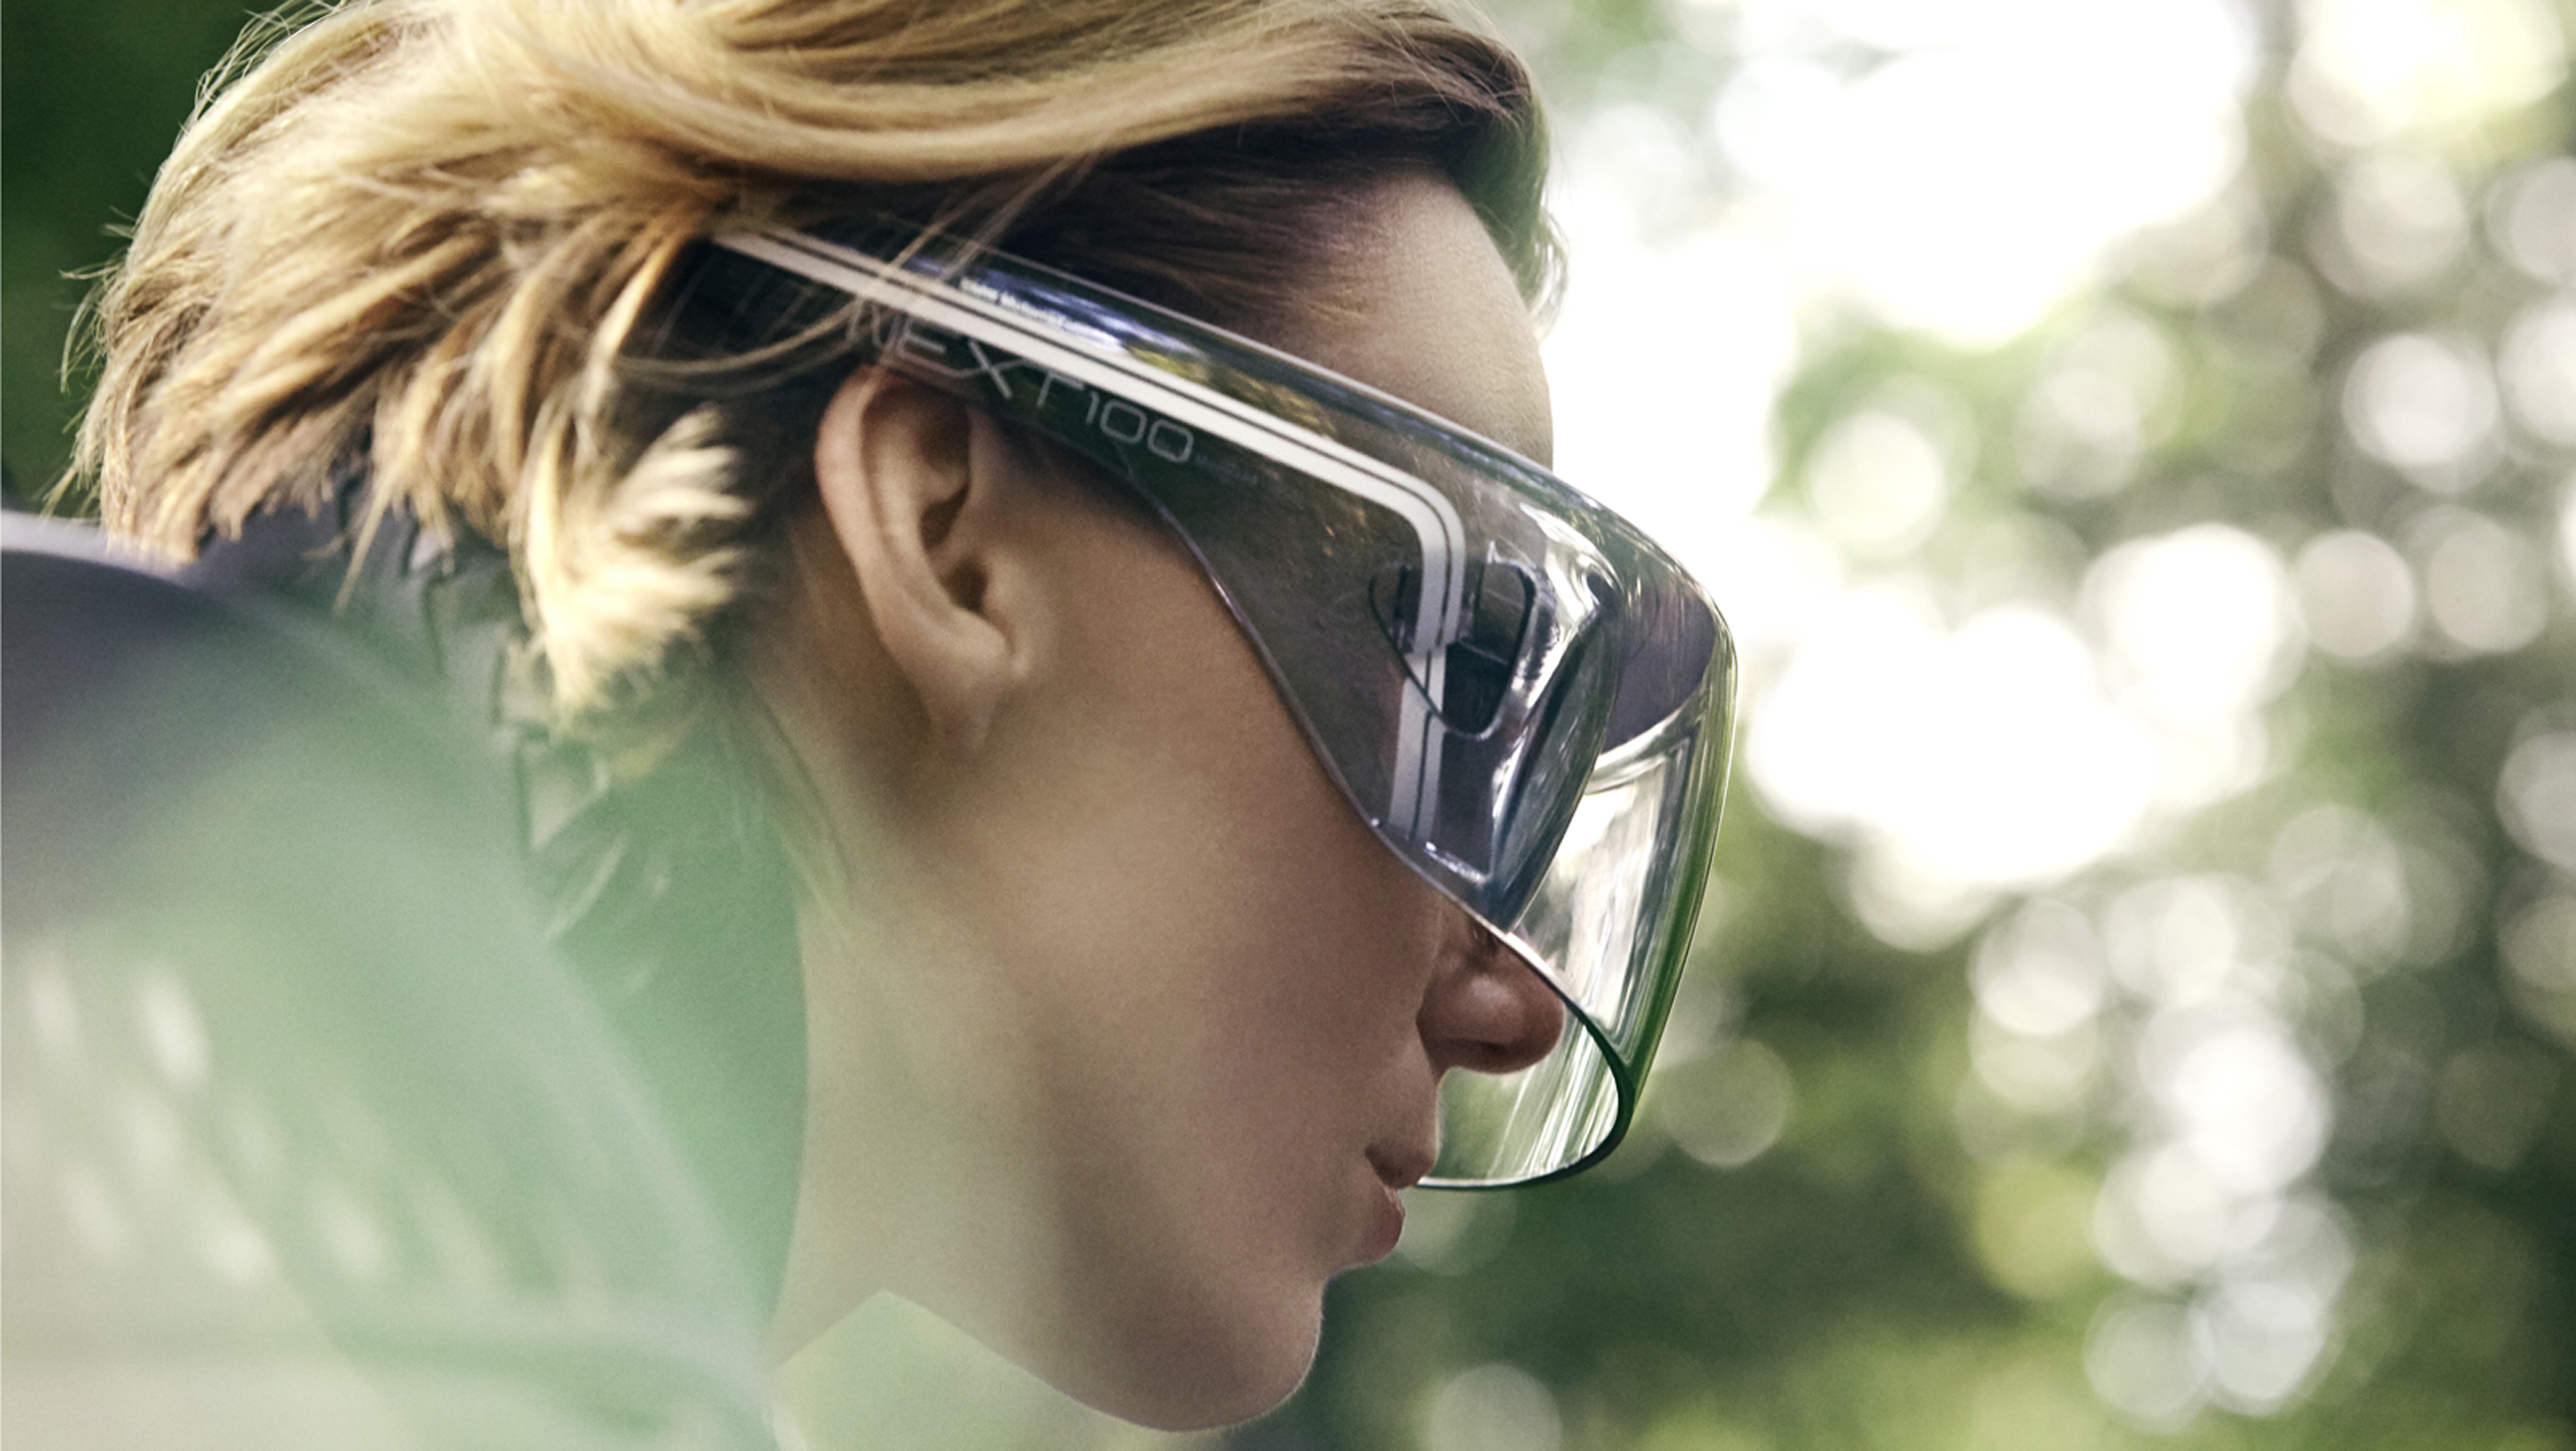 photo motorsport detail sunglasses bmw collection global